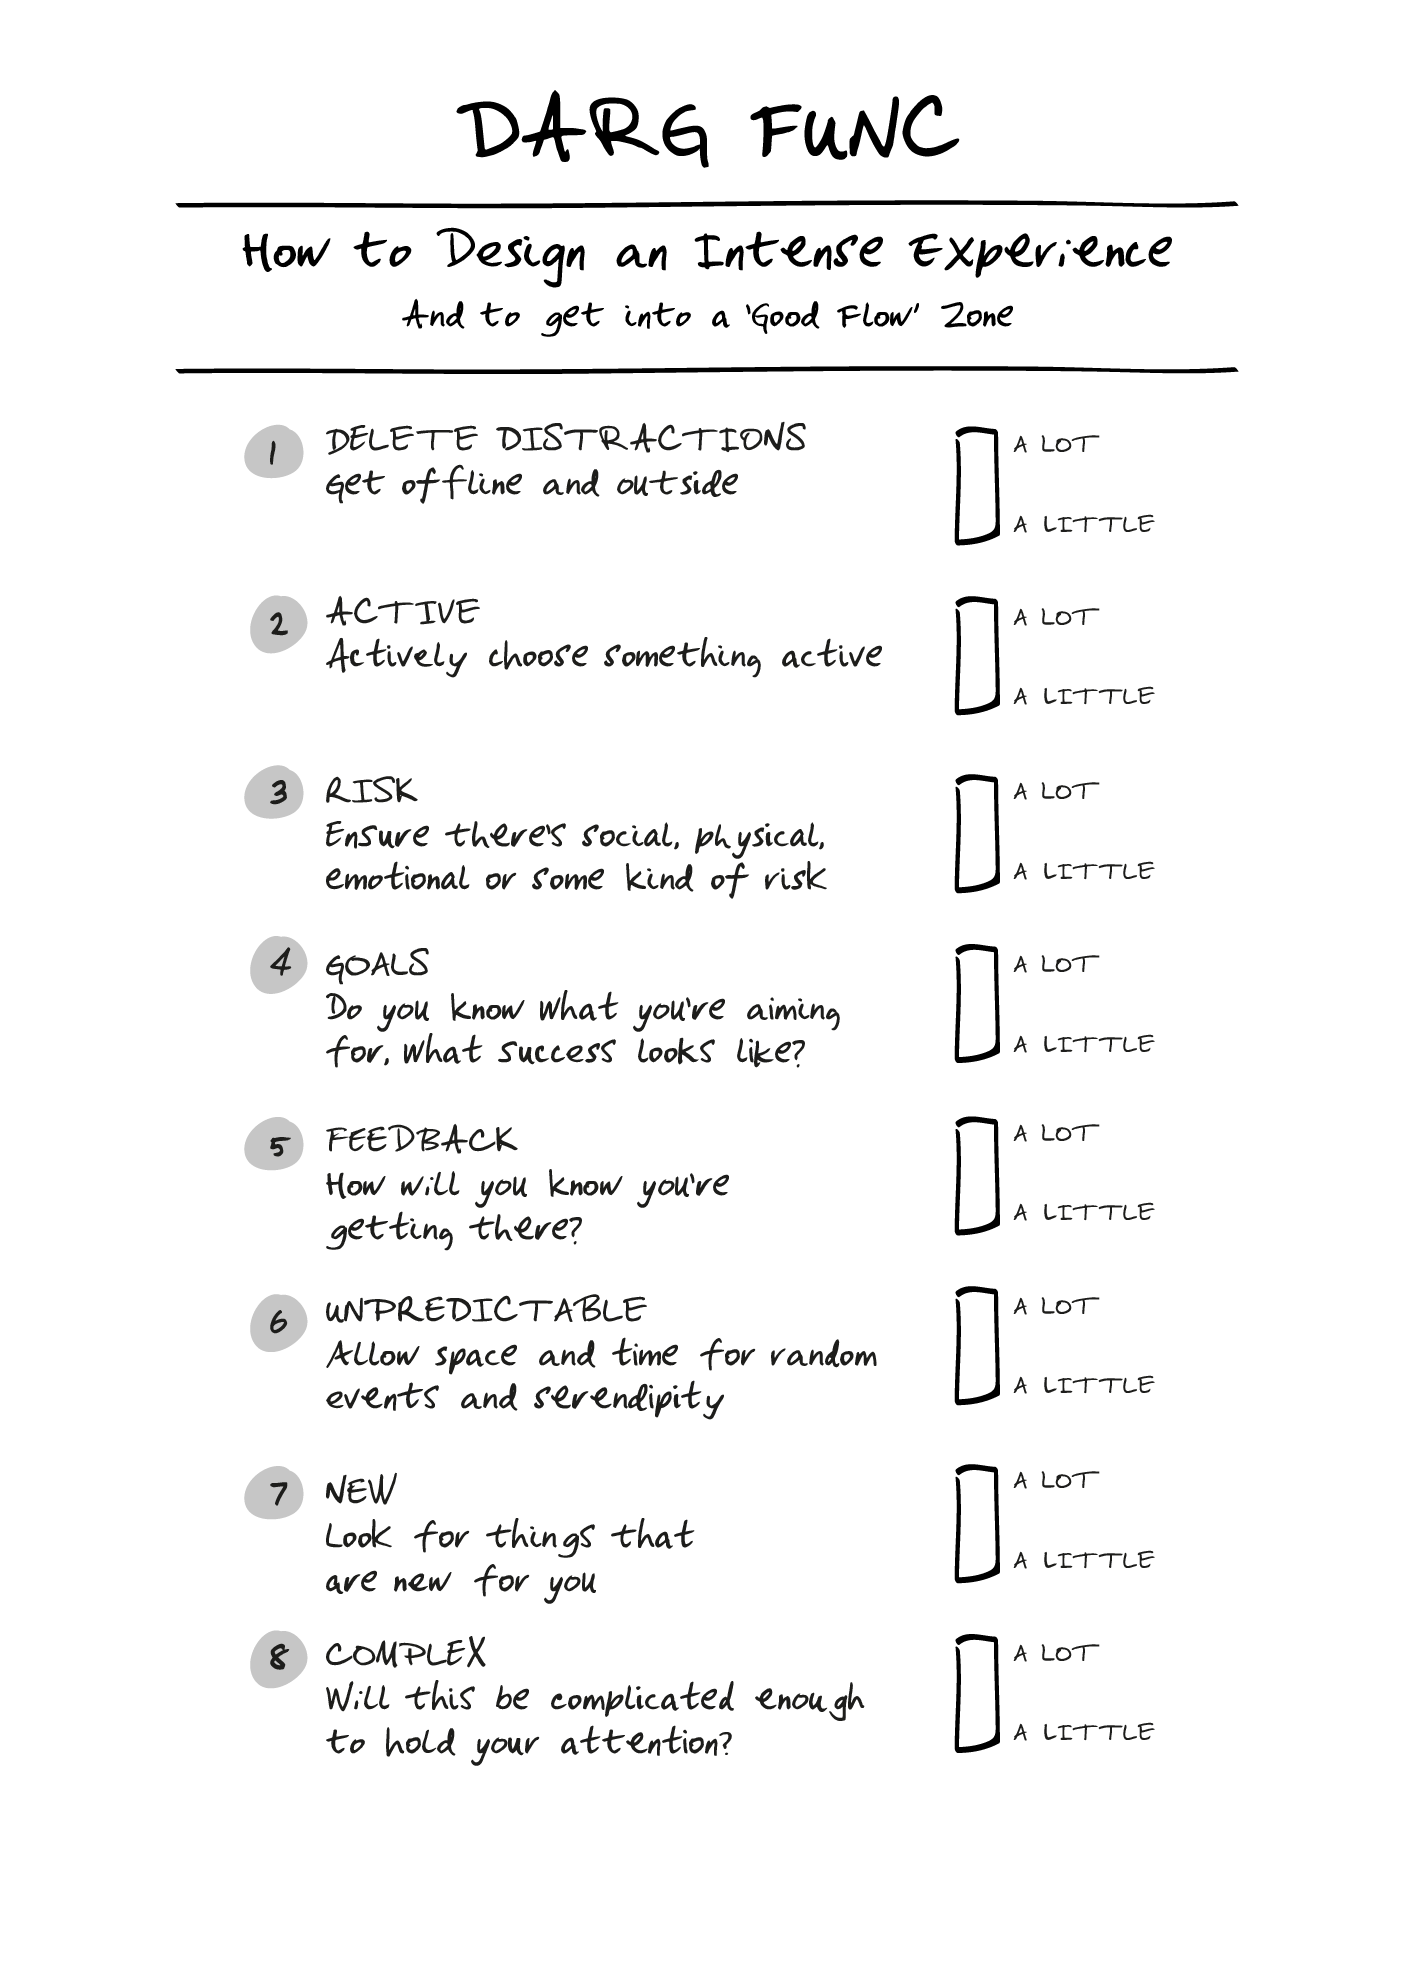 DARG FUNC! - Use the DARG FUNC checklist to design – and have! – more intense experiences that get you into the present, the zone, the right here, right now.